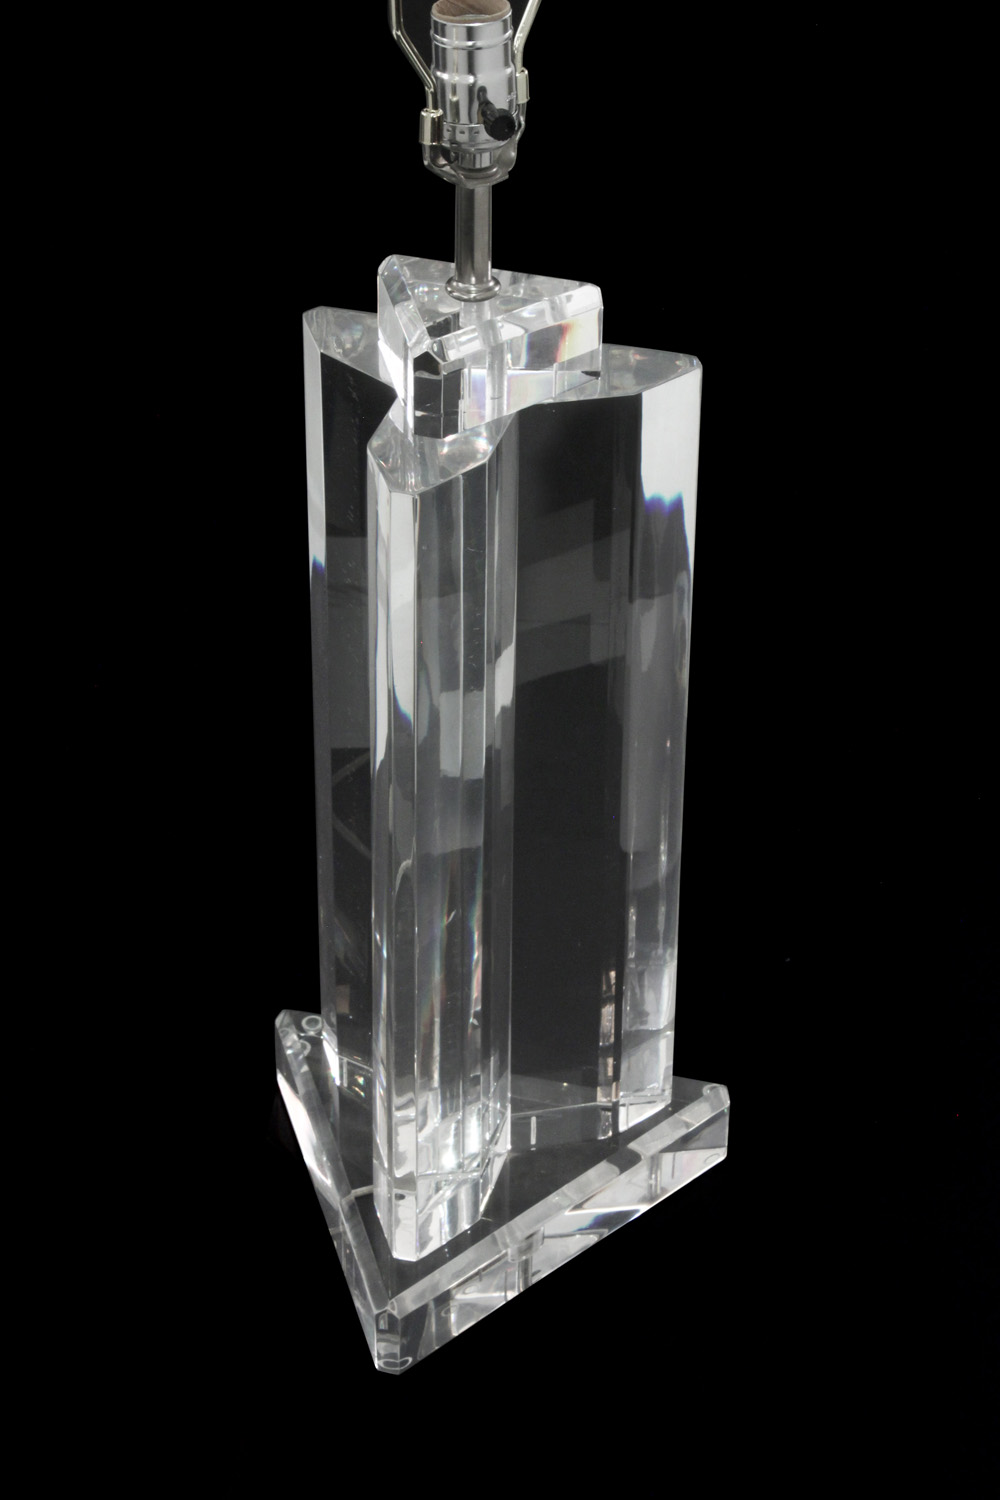 Prismatique 45 3edge lucite block tablelamp209 detail2 hires.jpg